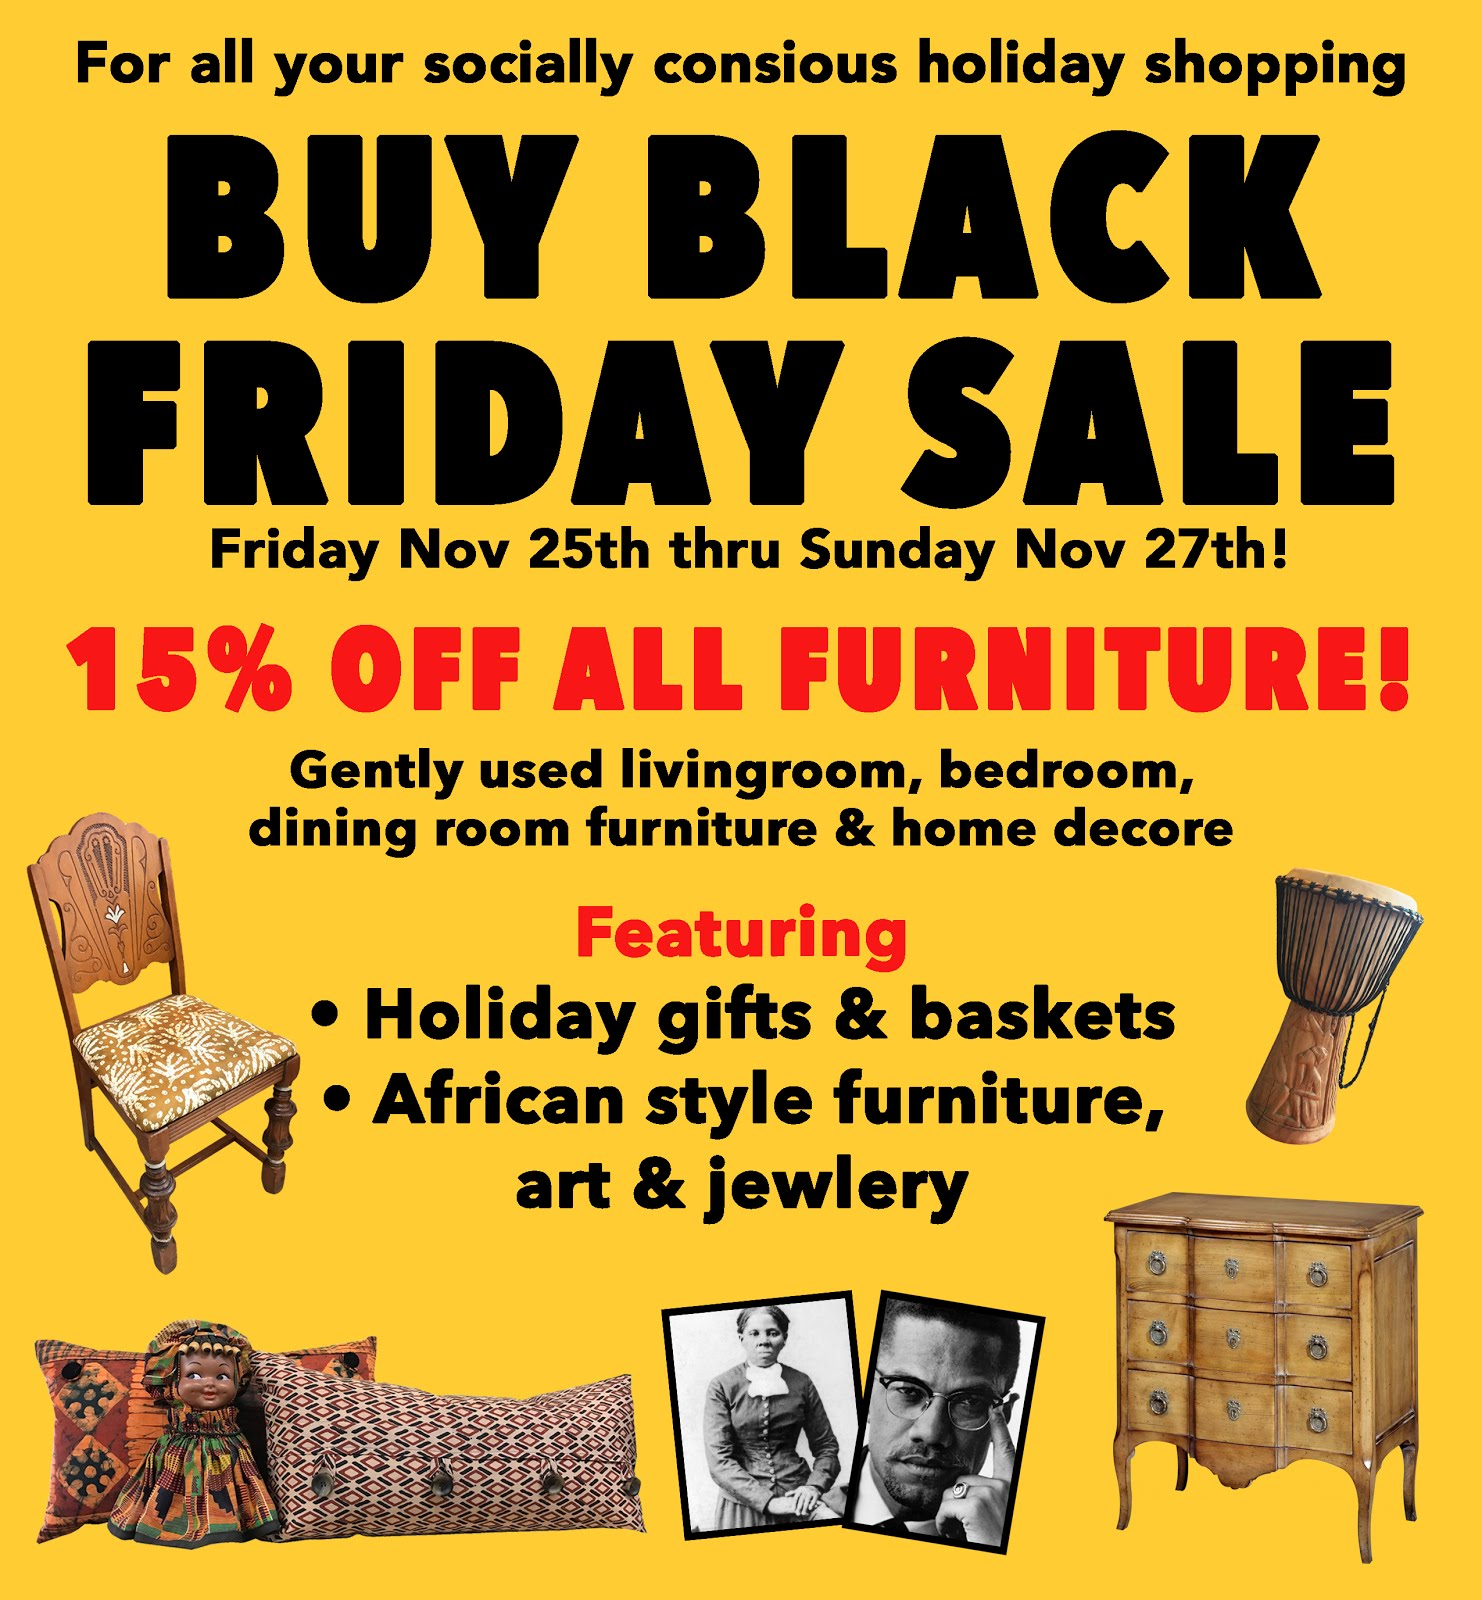 Furniture Store Black Friday Sale: Uhuru Furniture & Collectibles: Slate Tile Coffee Table SOLD